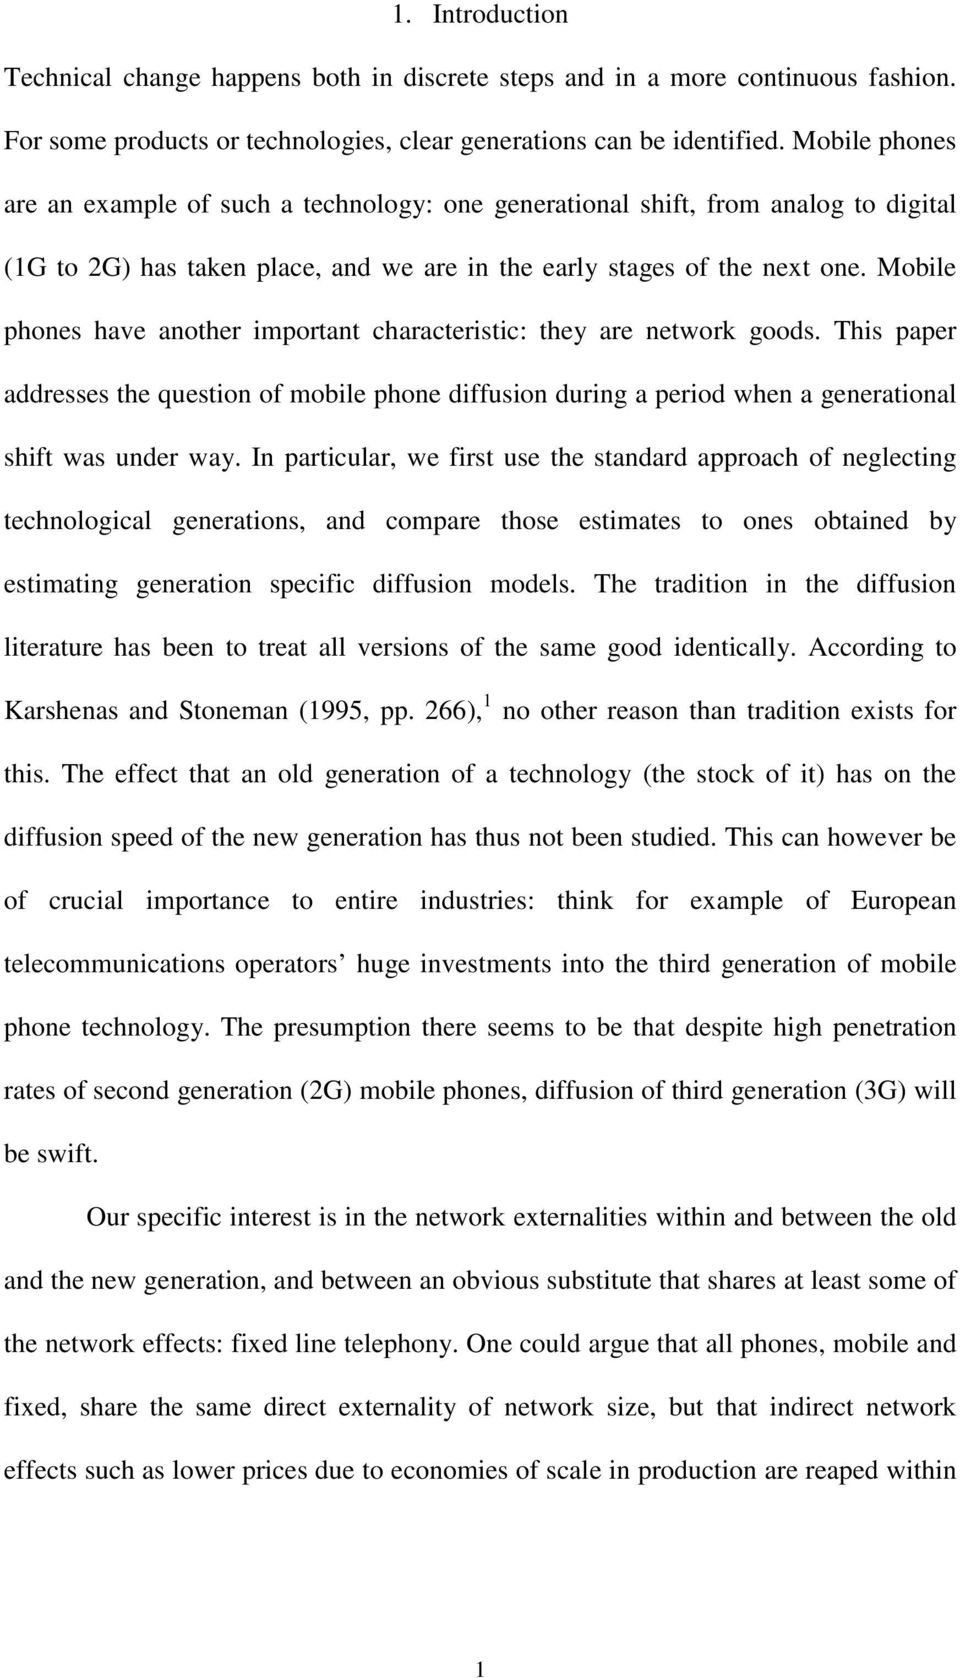 Mobile phones have anoher imporan characerisic: hey are nework goods. This paper addresses he quesion of mobile phone diffusion during a period when a generaional shif was under way.